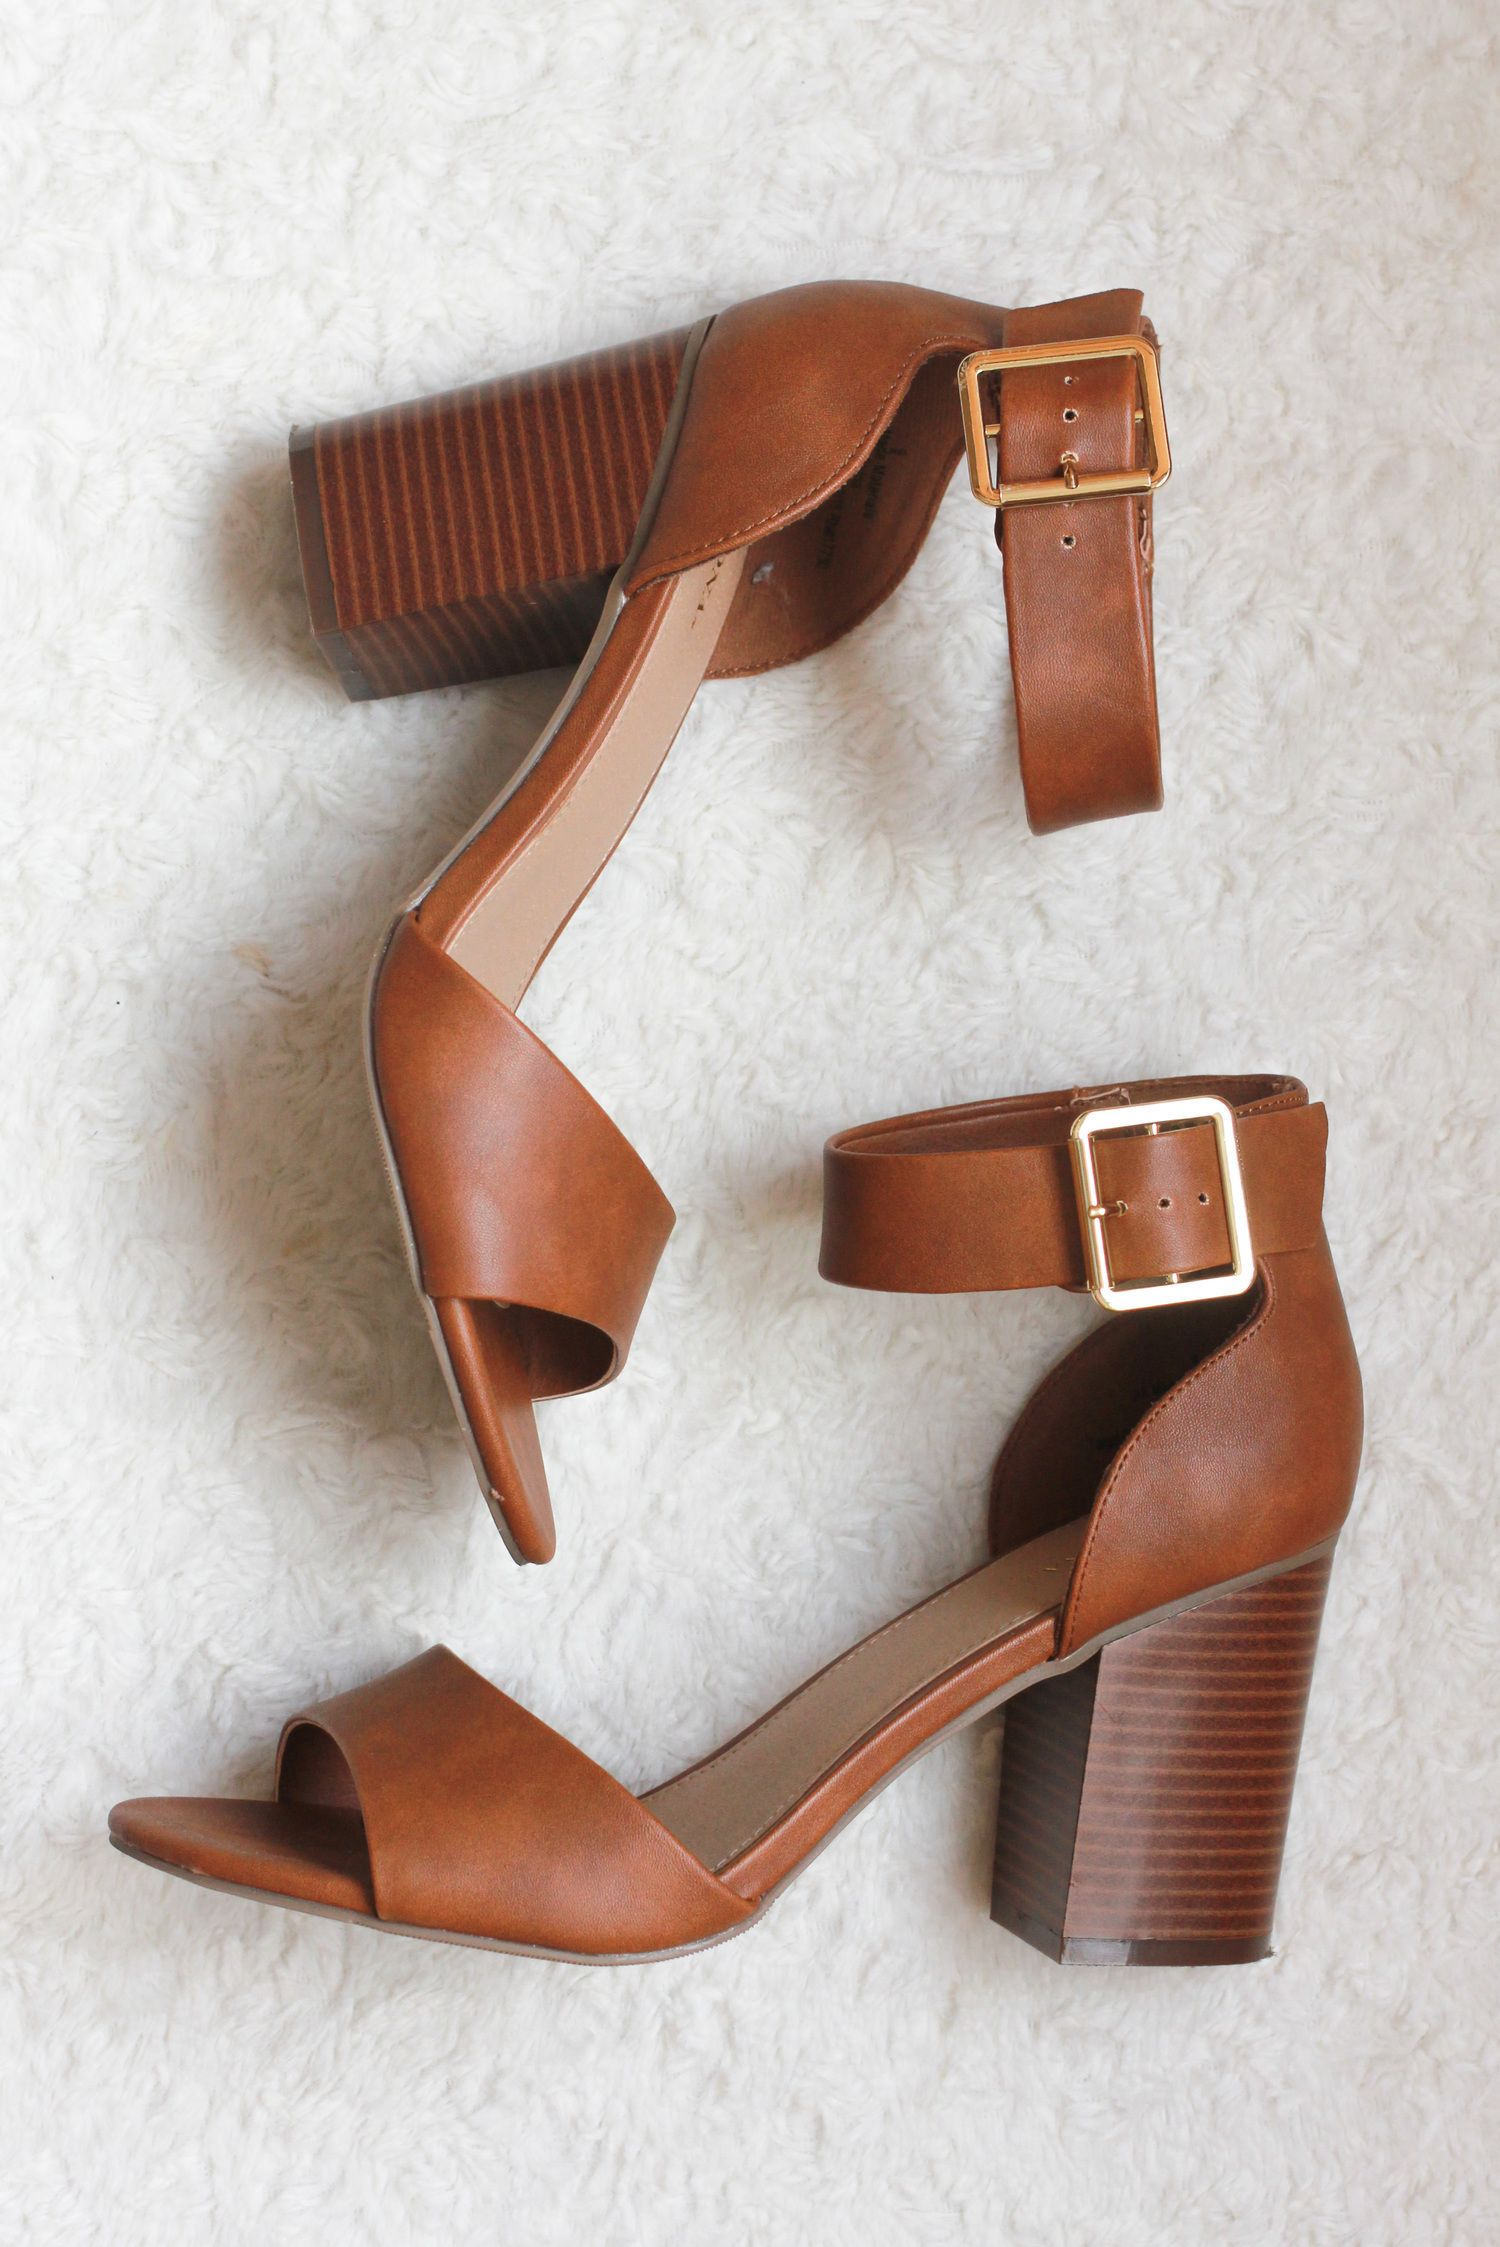 e829b3363d2 Merona by Target ankle strap block heel cognac brown sandals. spring shoe  for weddings